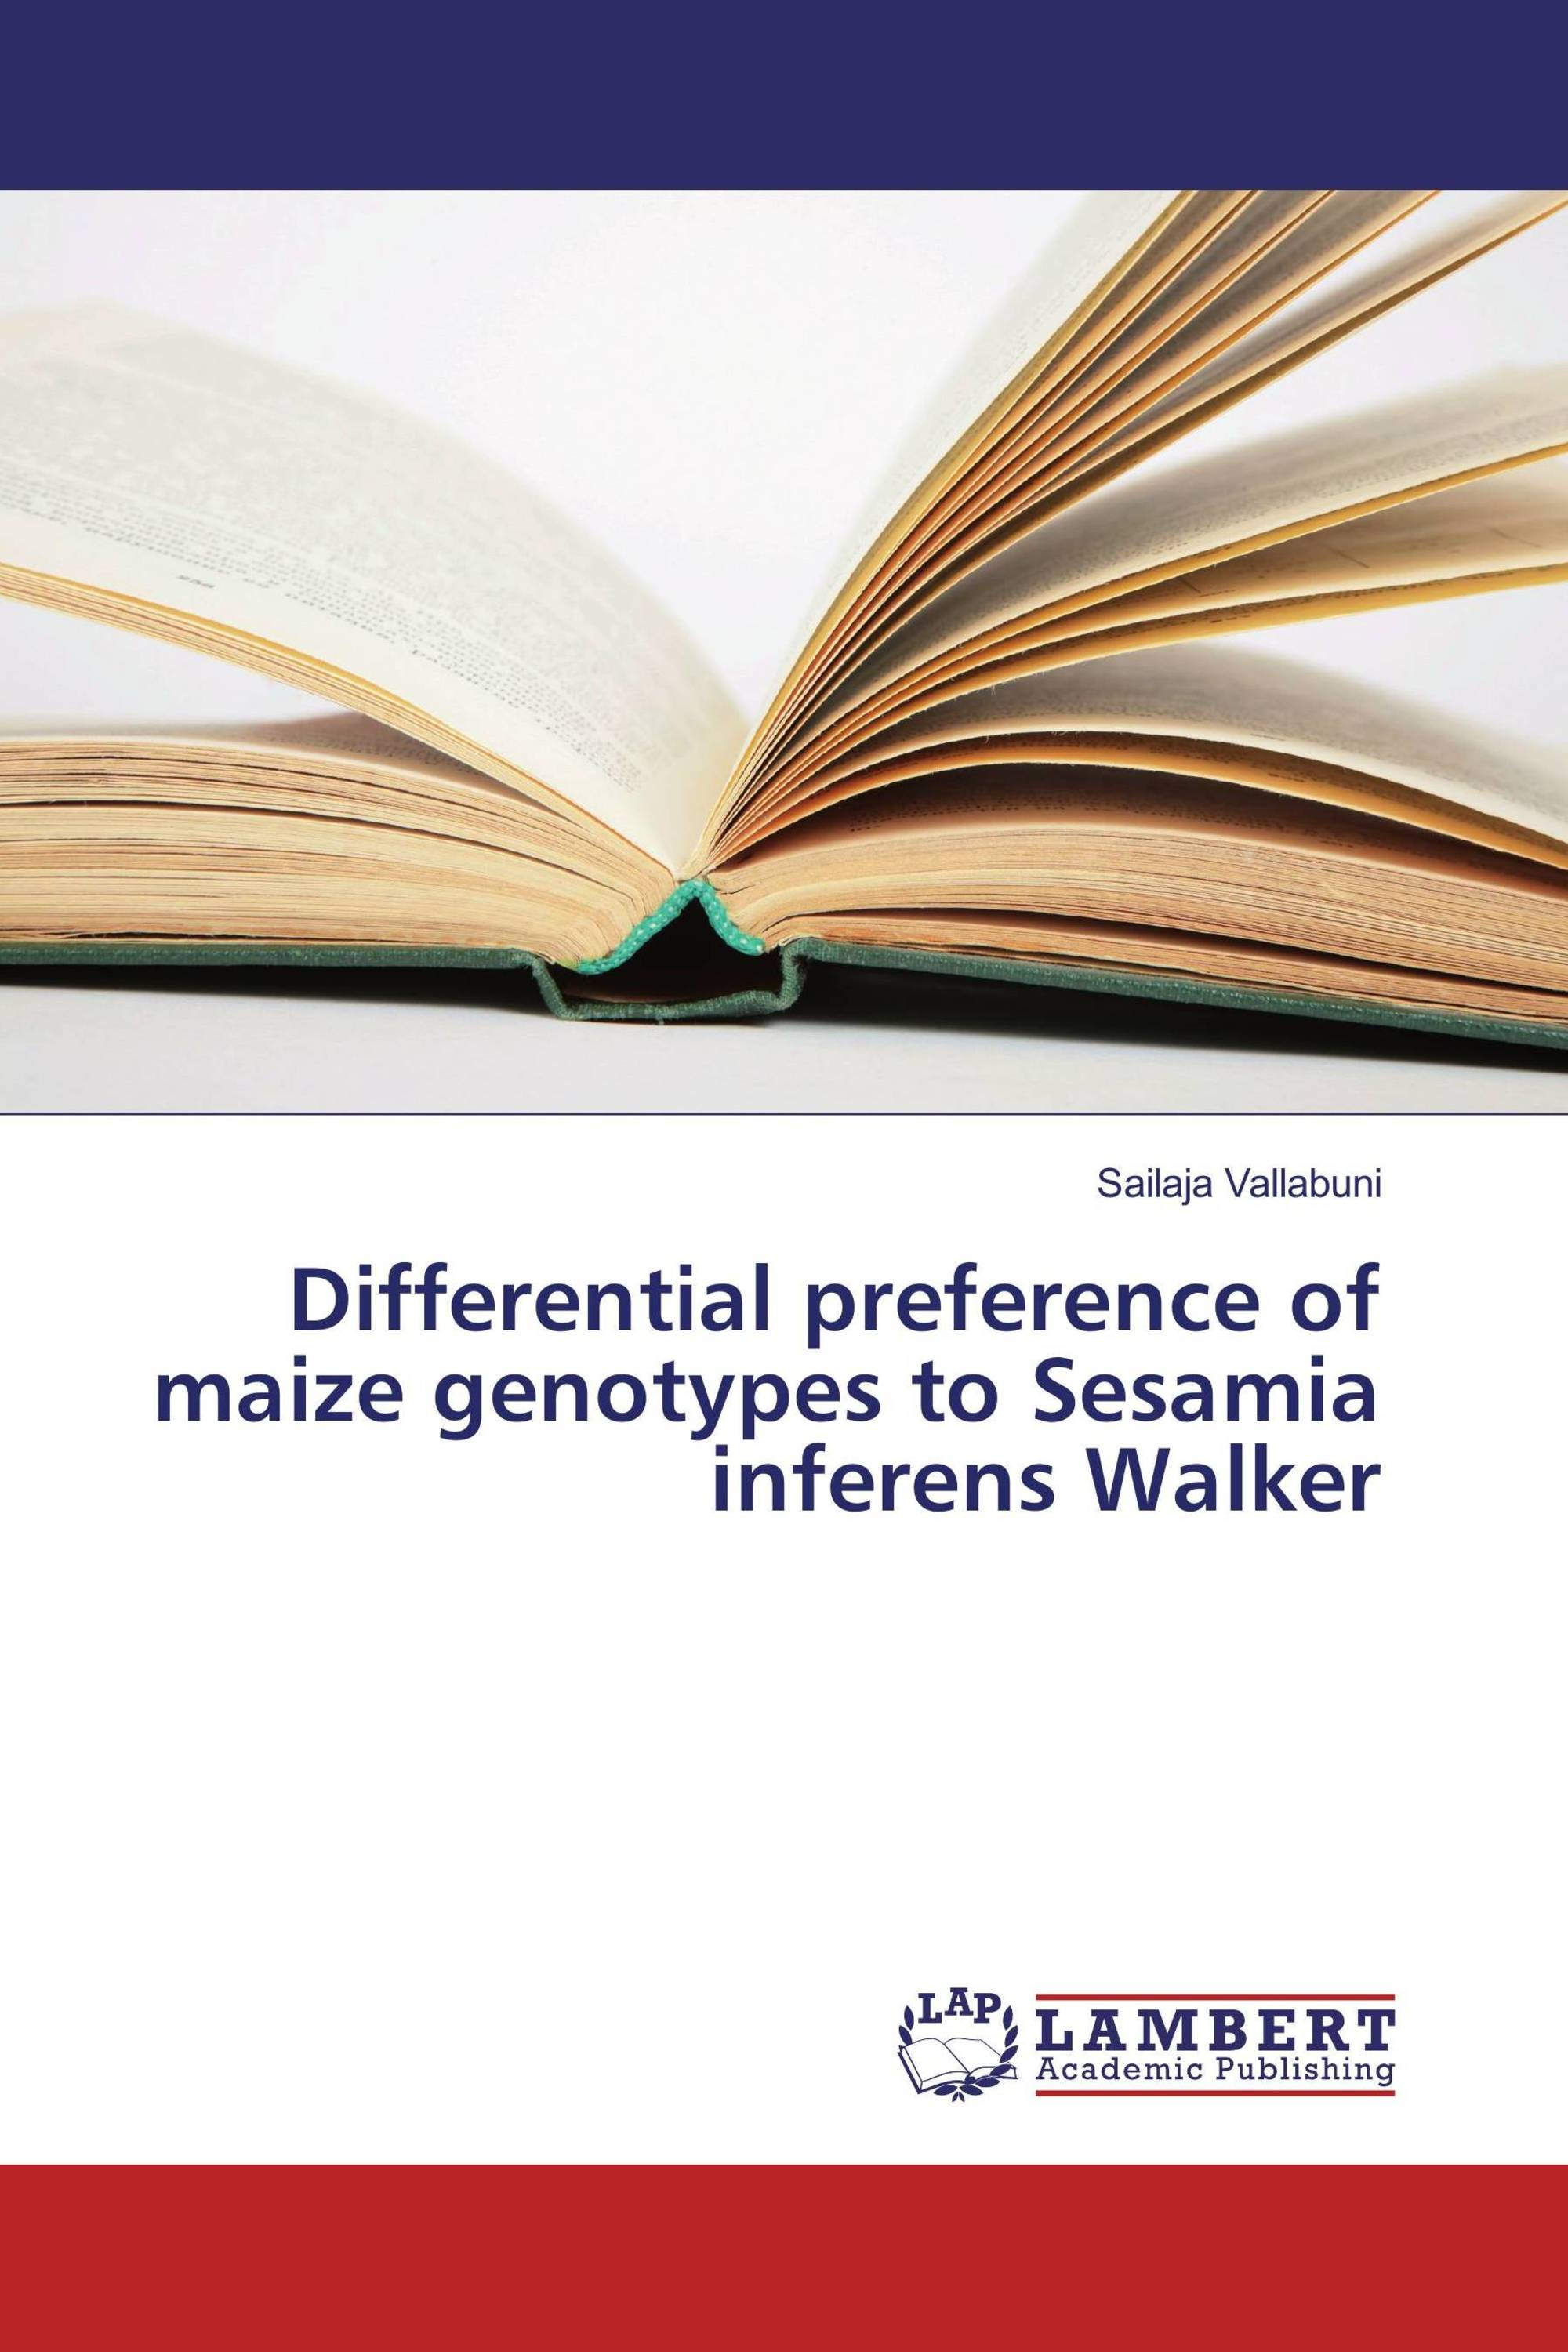 Differential preference of maize genotypes to Sesamia inferens Walker